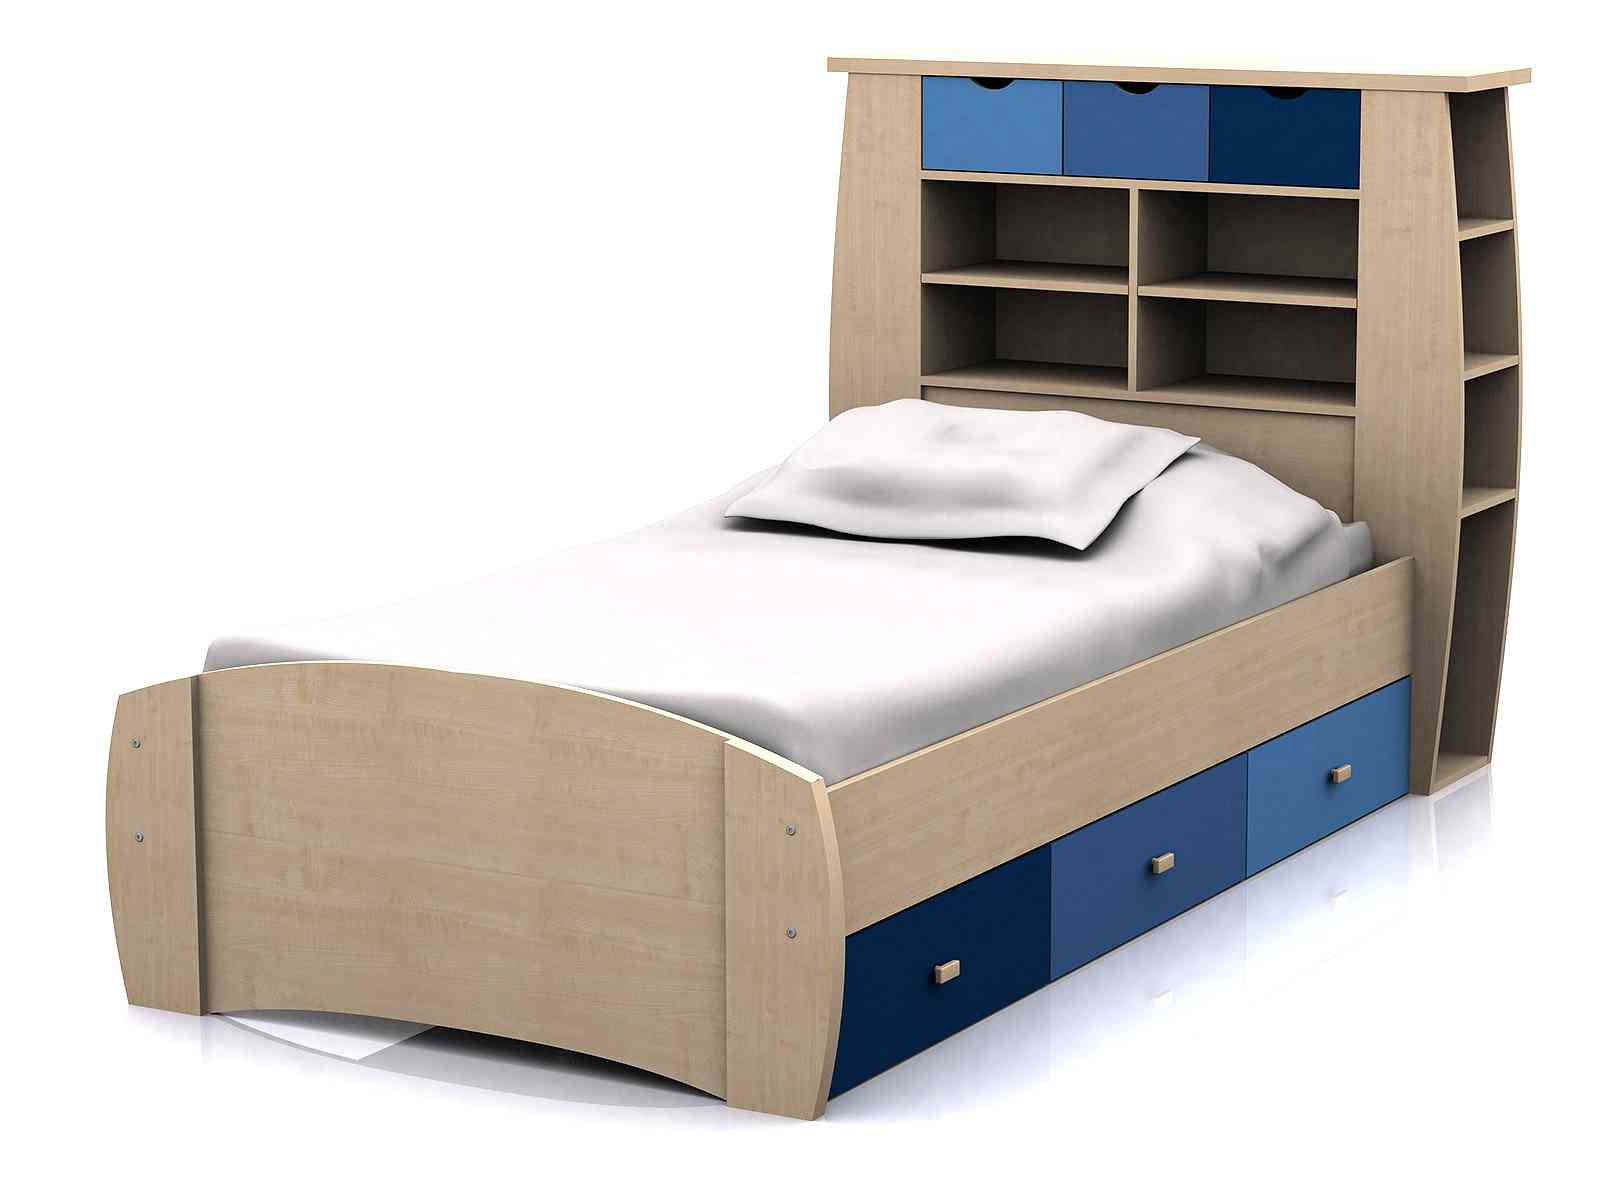 Gfw The Furniture Warehouse Sydney 3 Storage Bed